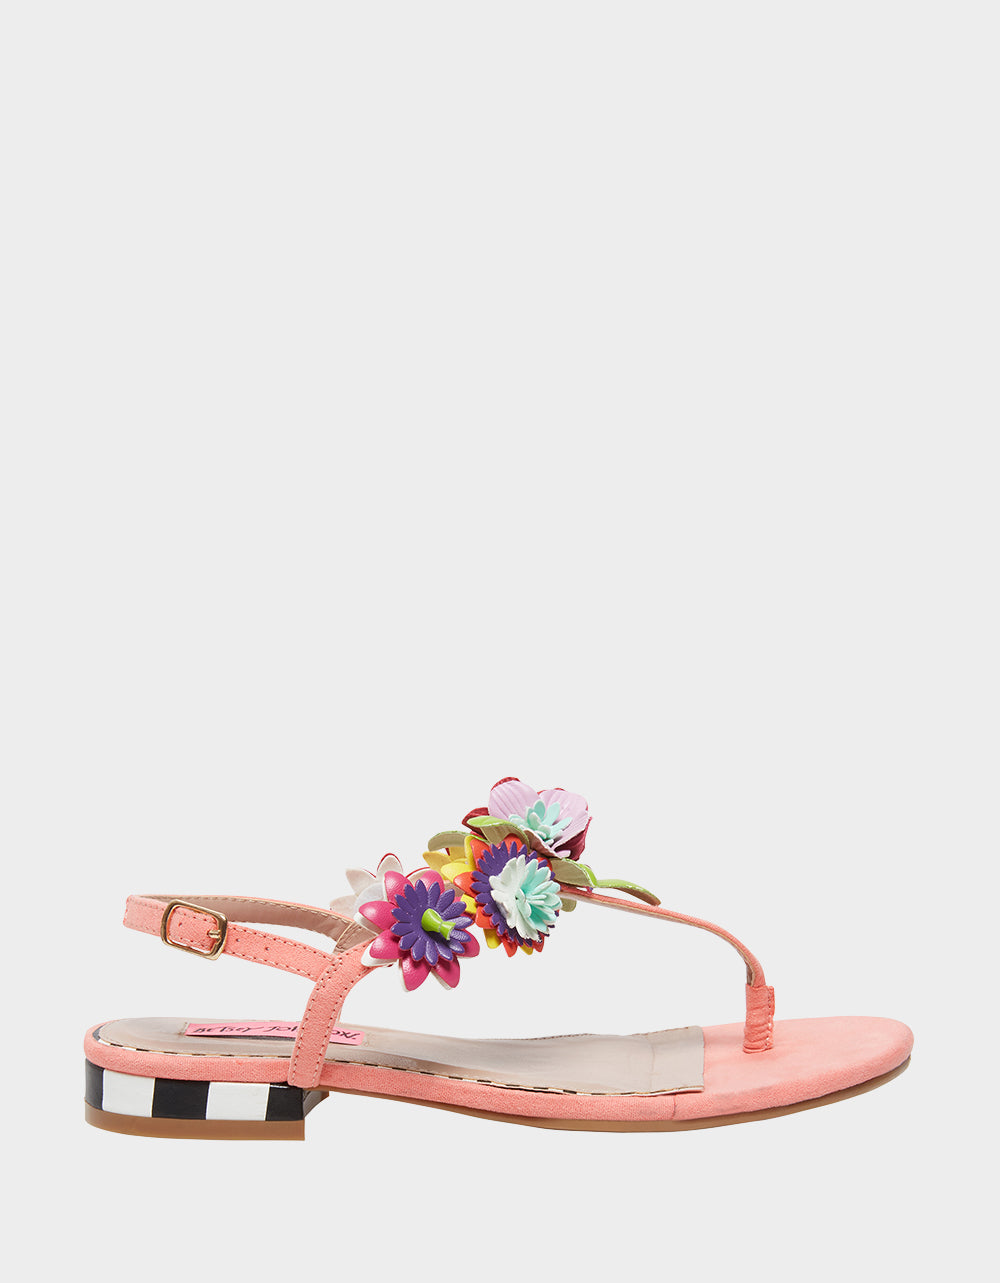 ESMEE CORAL - SHOES - Betsey Johnson